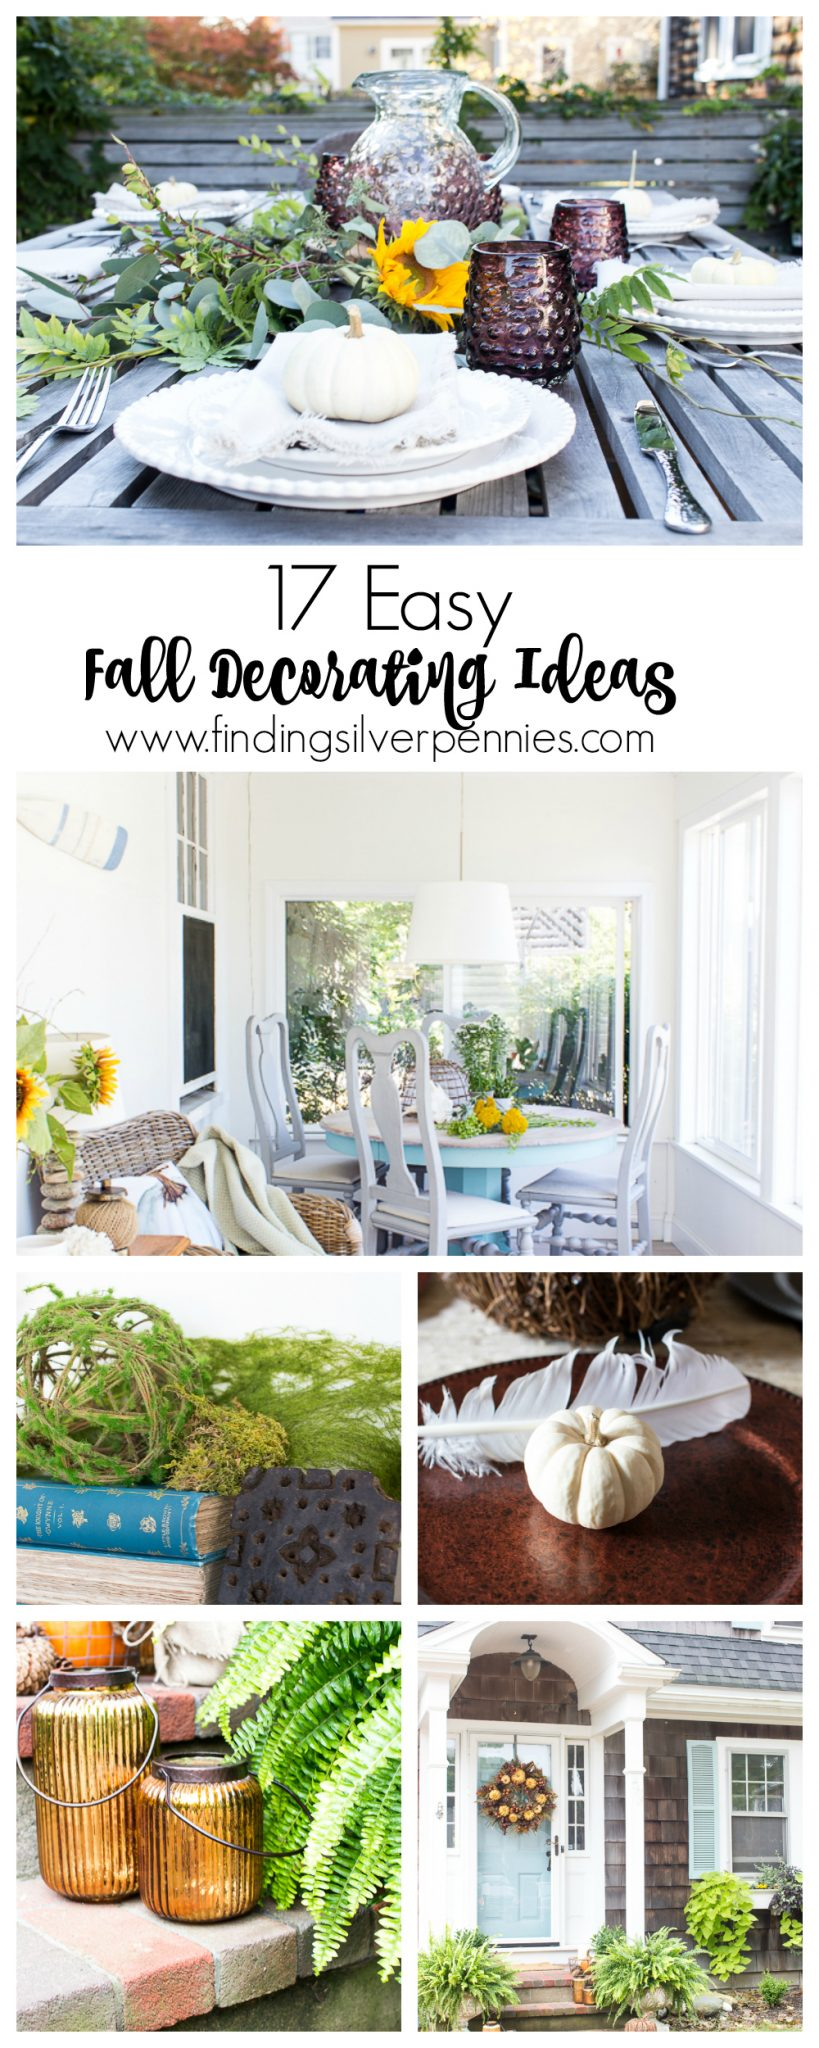 17 Easy Fall Decorating Ideas - Finding Silver Pennies